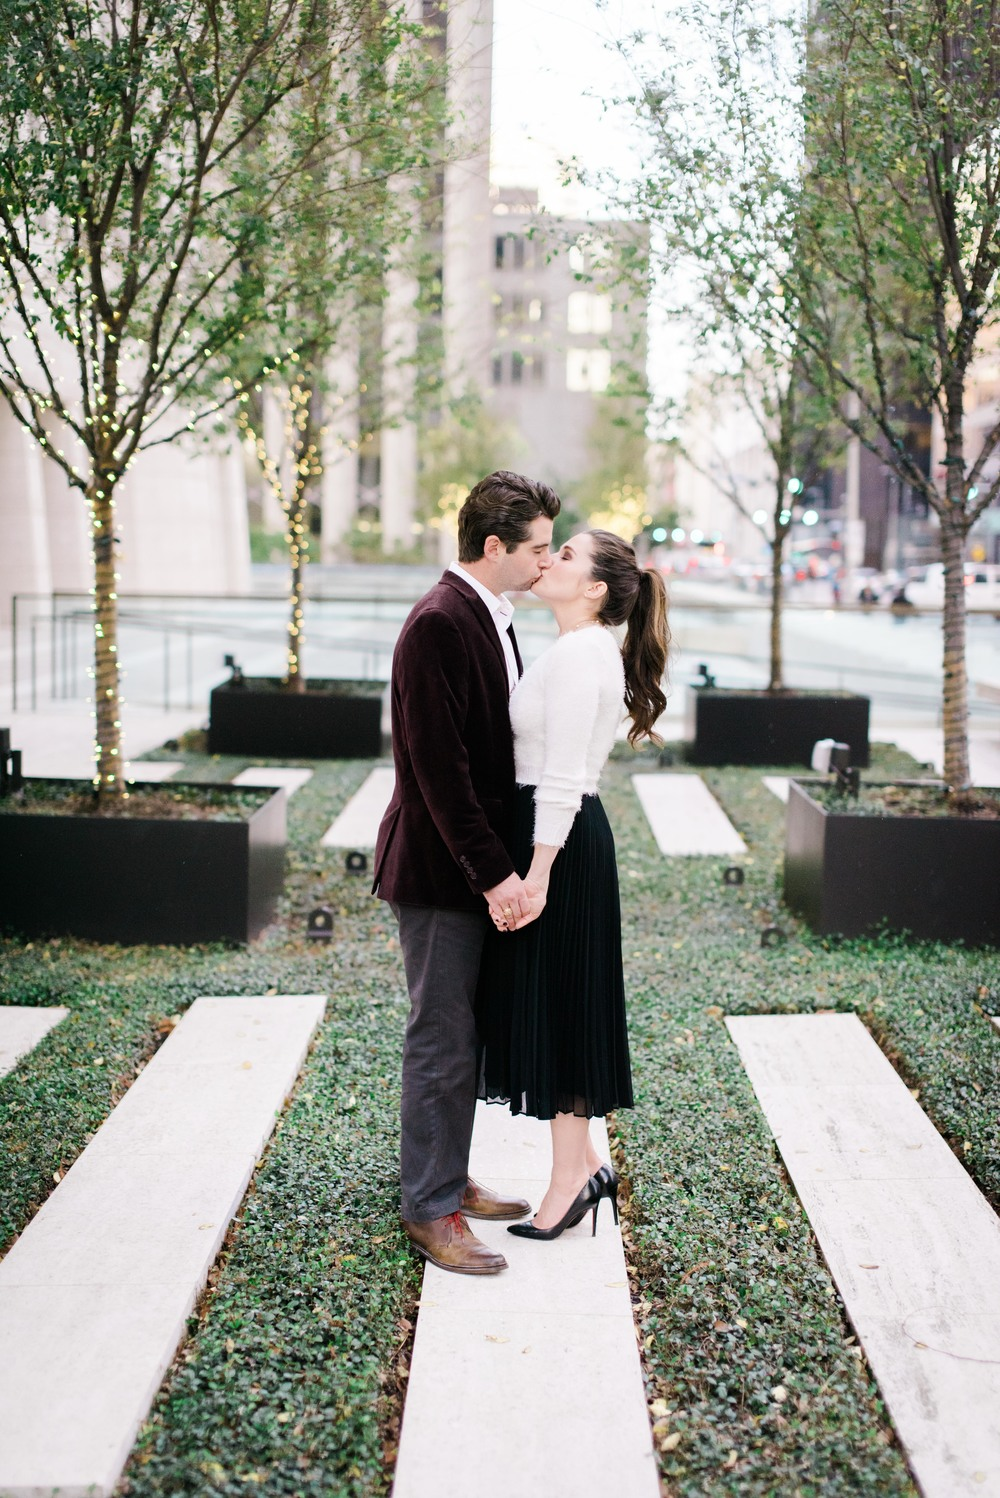 houston wedding photographer dana fernandez photography-5.jpg